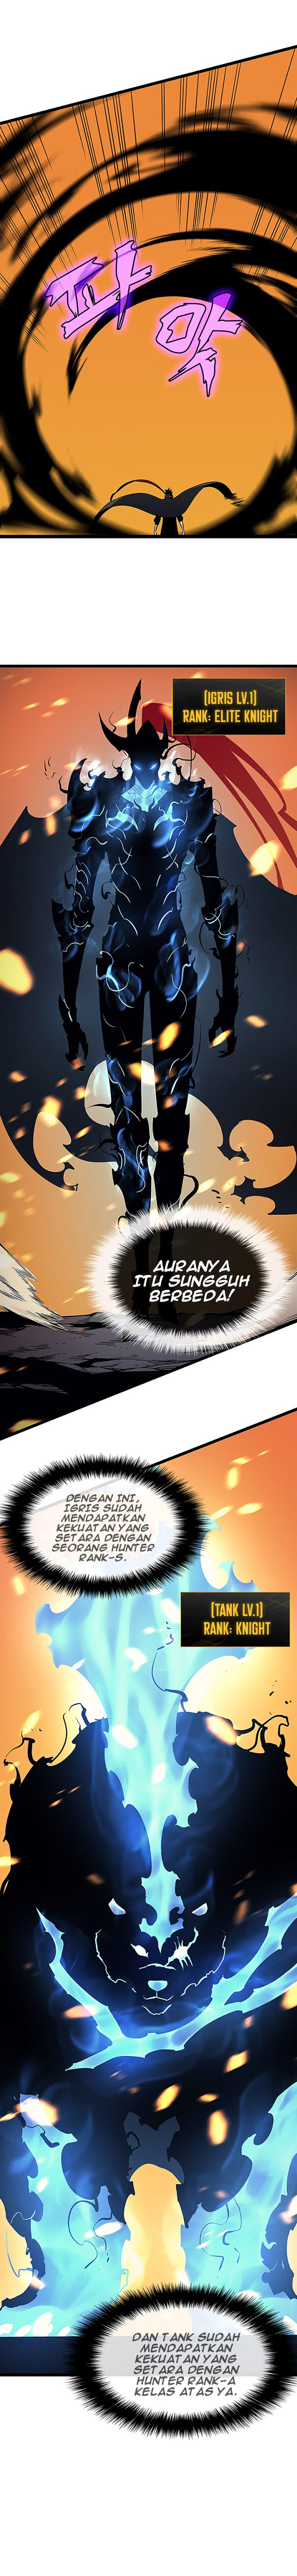 Solo Leveling Chapter 84 Indo gambar 24